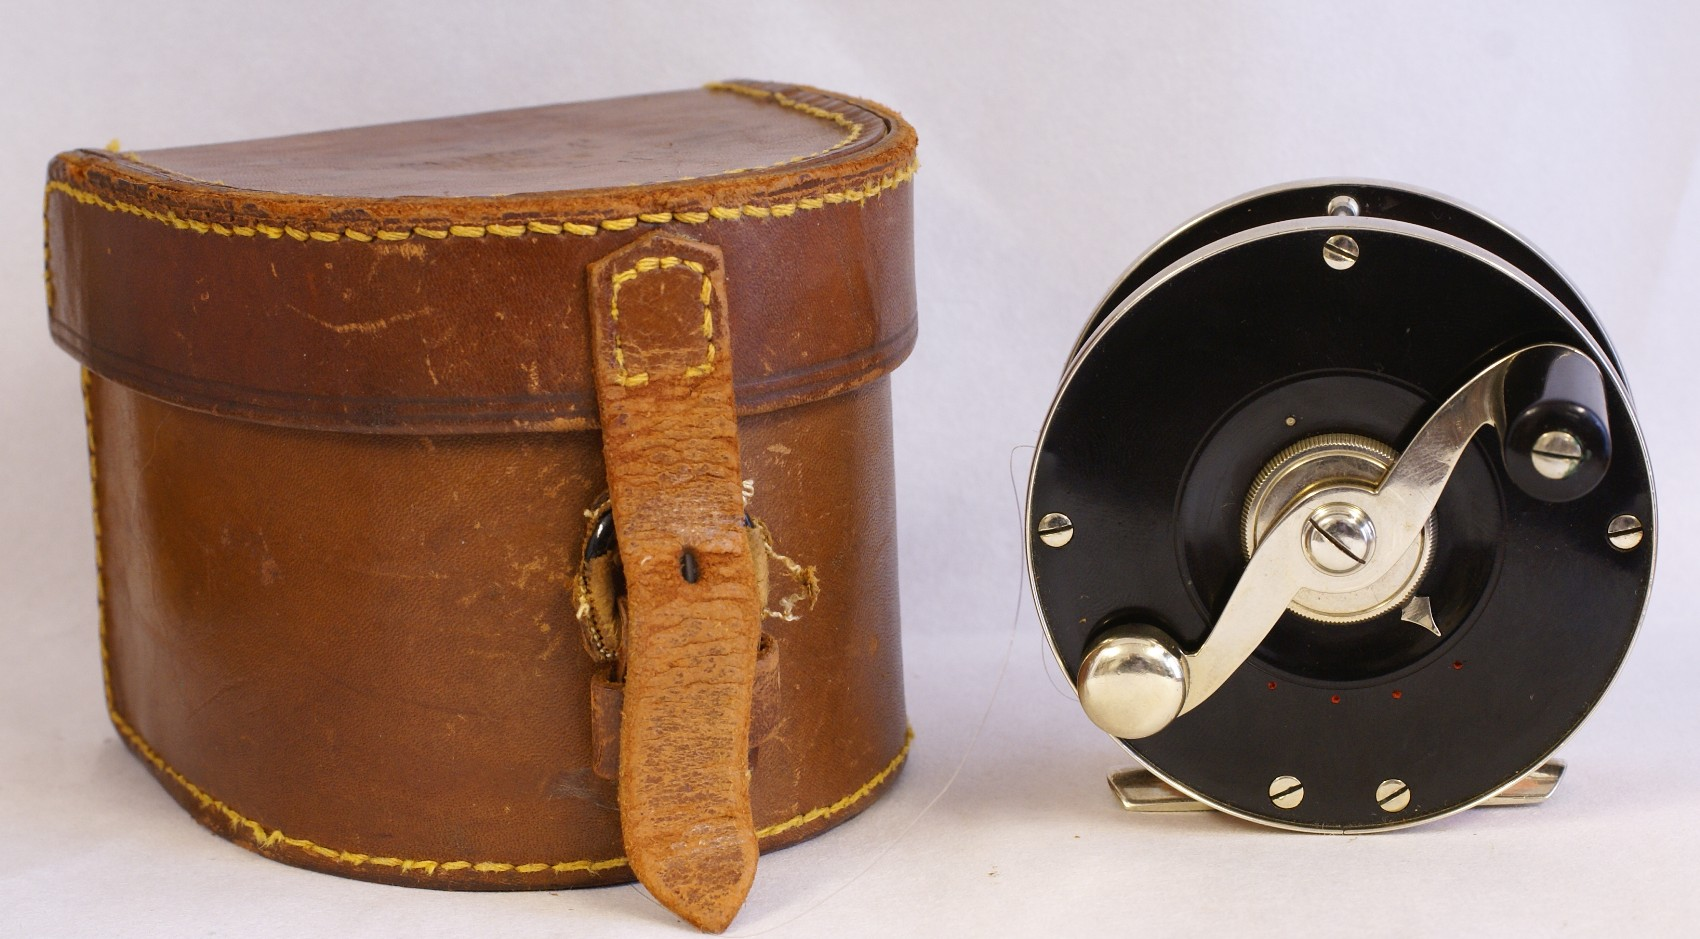 Vintage Edward vom Hofe Model 360 Perfection flyreel, JD. Wagner, Agent